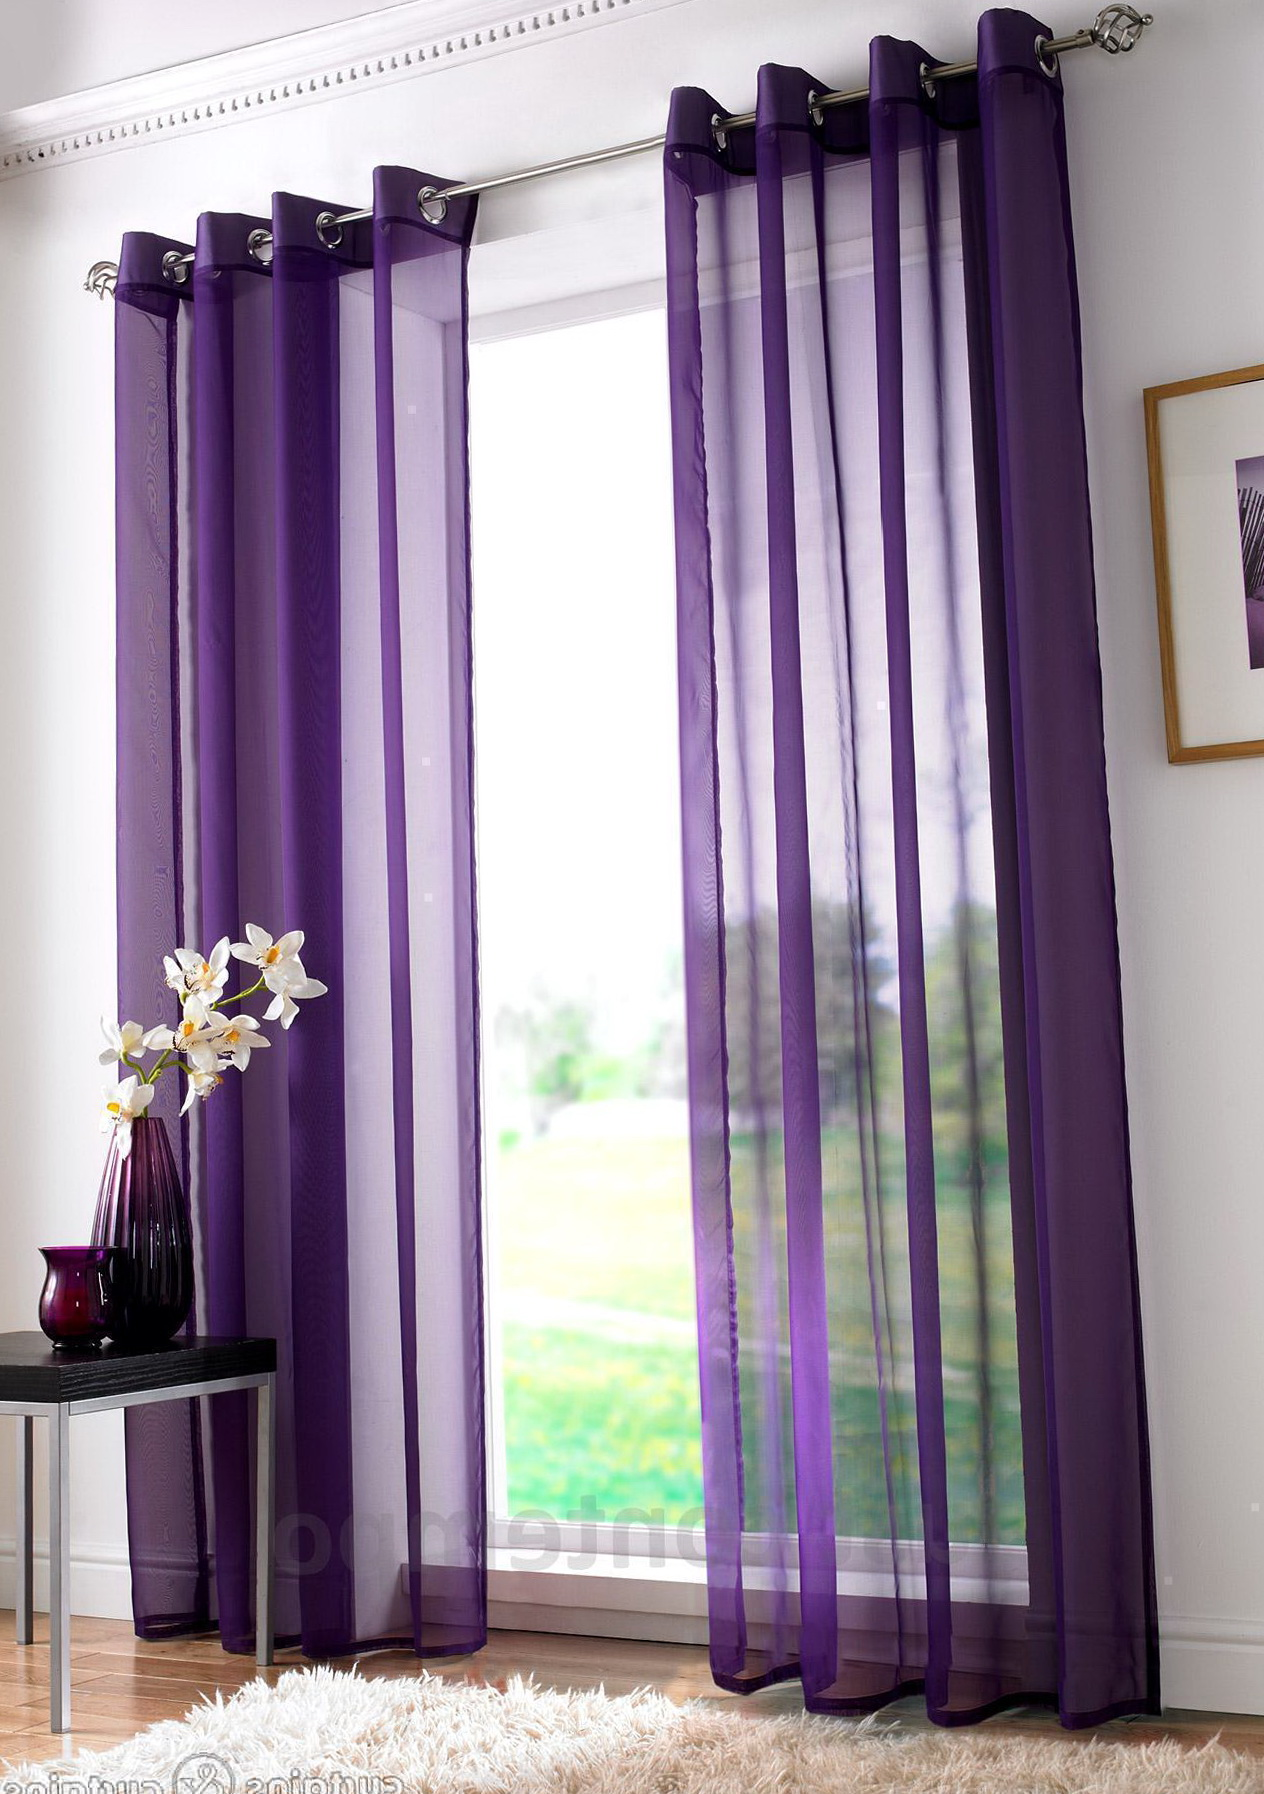 grommetrtains bright sheer curtain photos full of grommetins panels design designrtain panelsbrightrtainspurple inchpurple size top grommet purple curtains paisleyin impressive